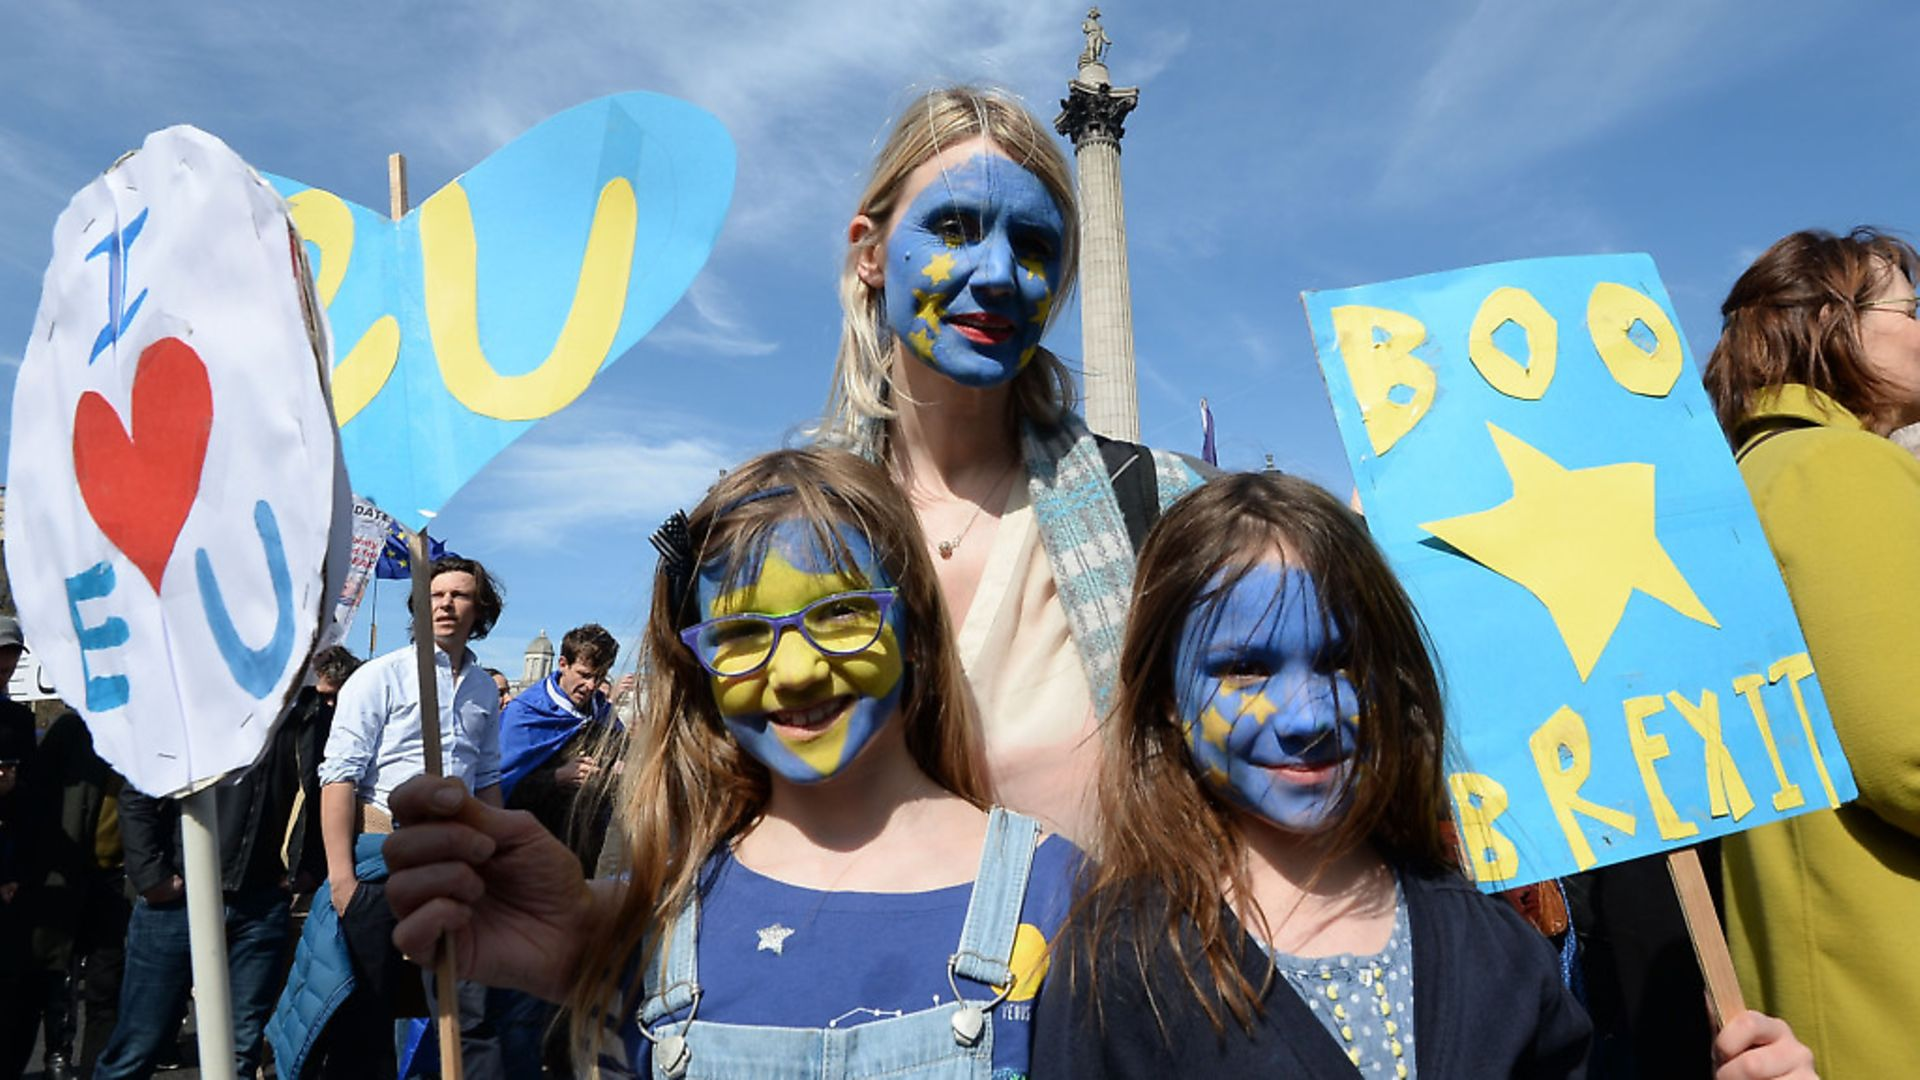 Protesters at the Pro-Remain March for Europe event John Stillwell/PA Wire - Credit: PA